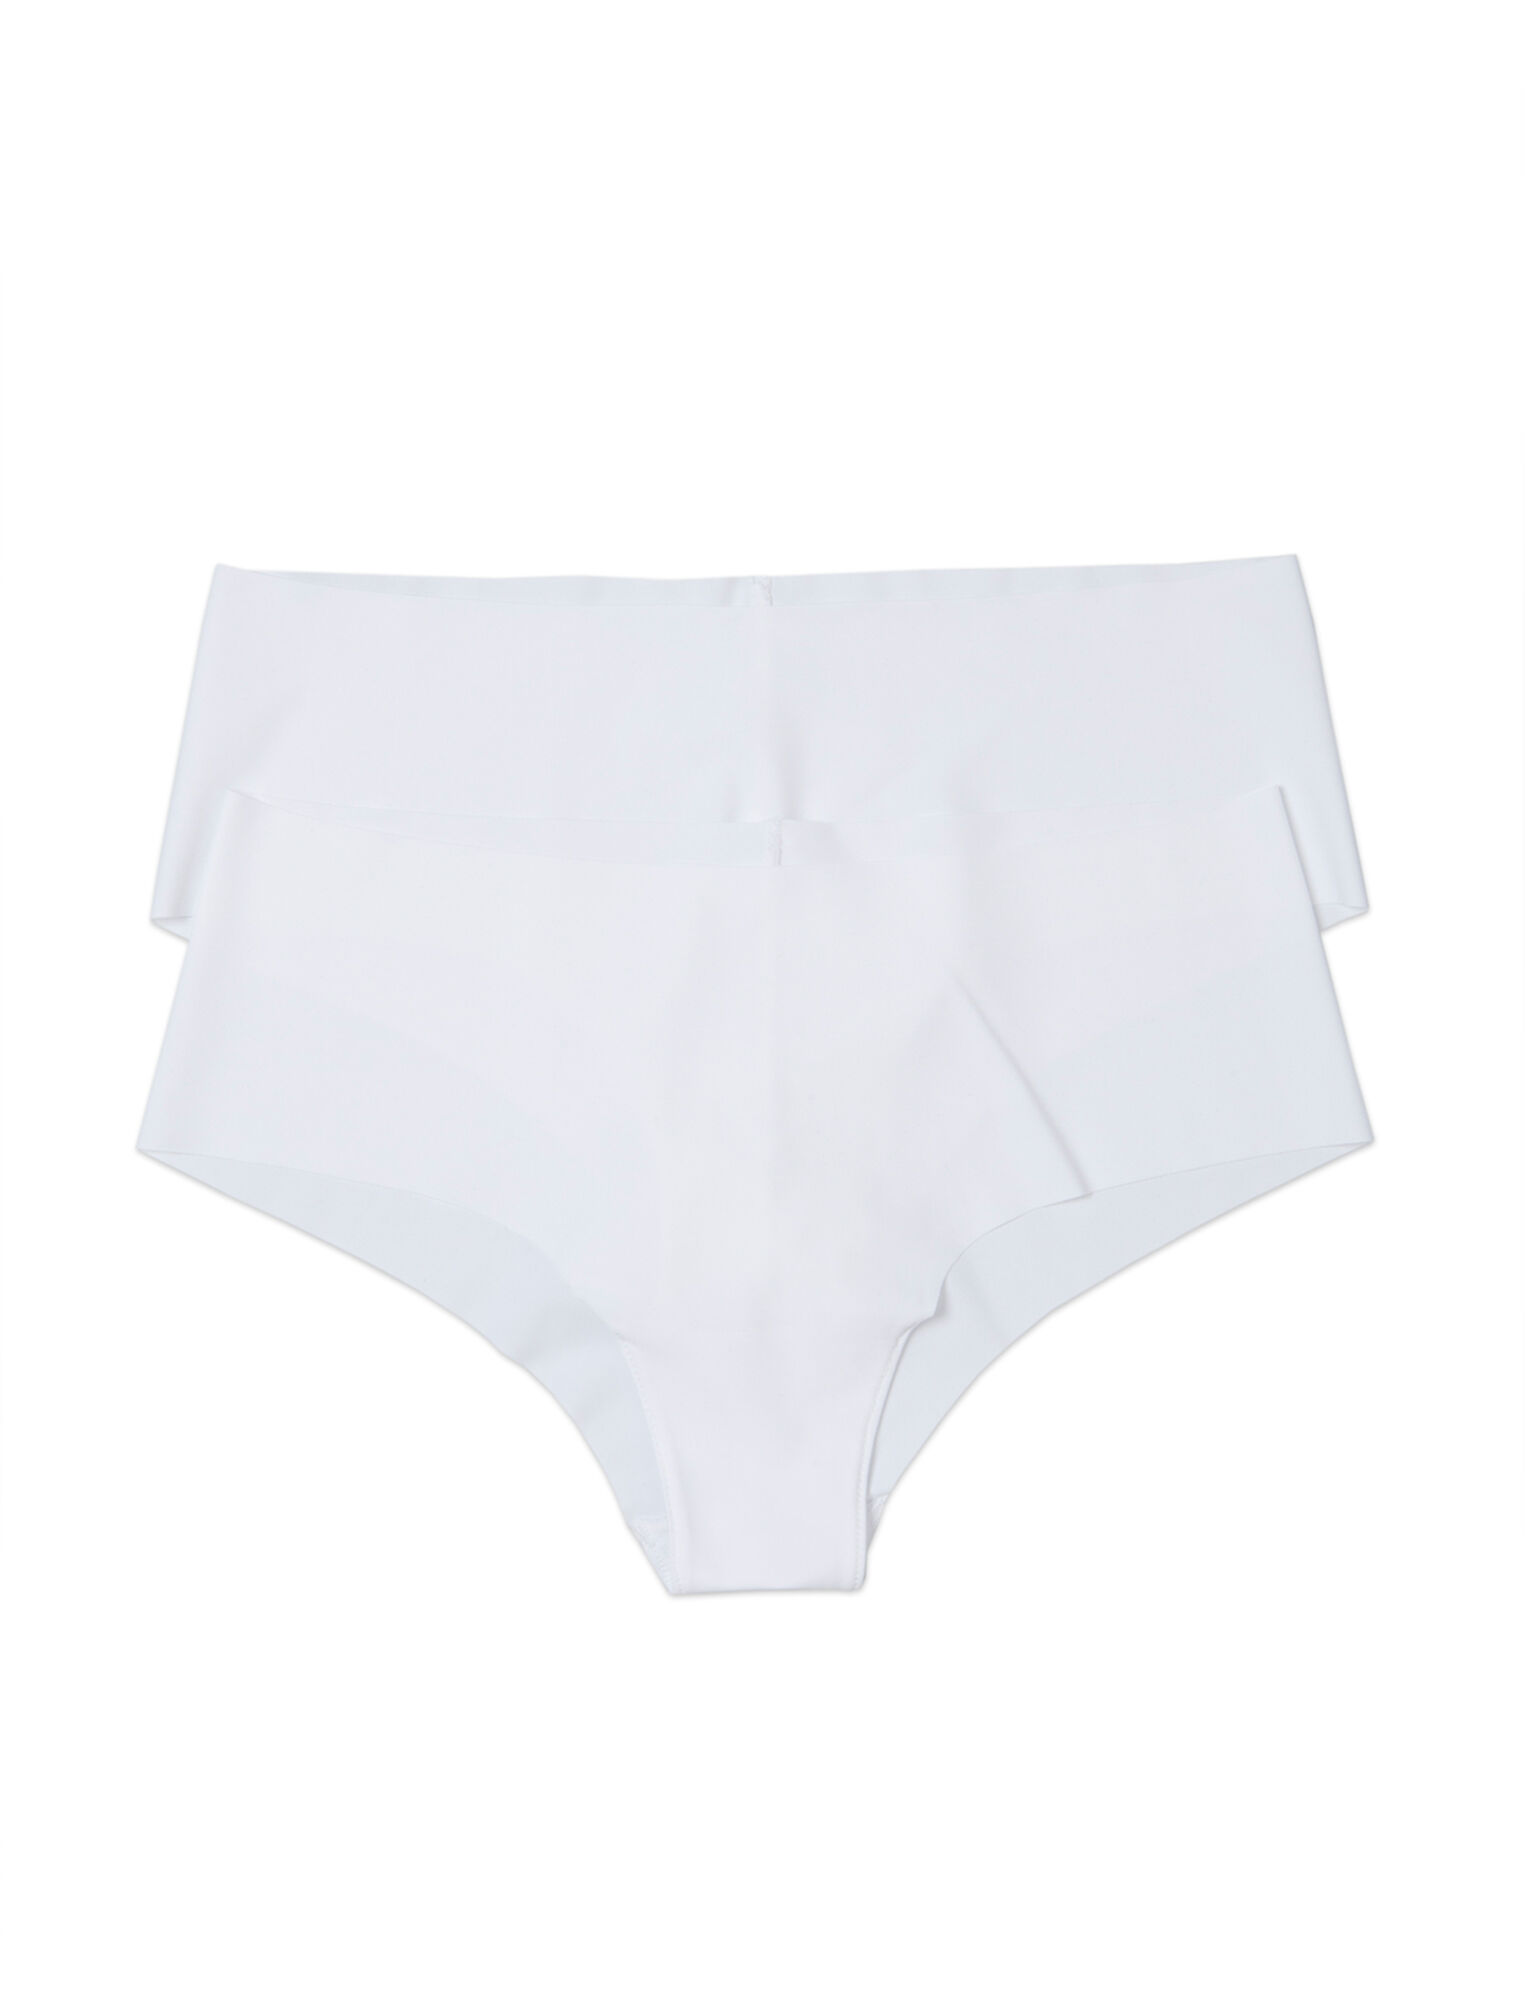 39575109d9 Pack 2 culottes sin costuras